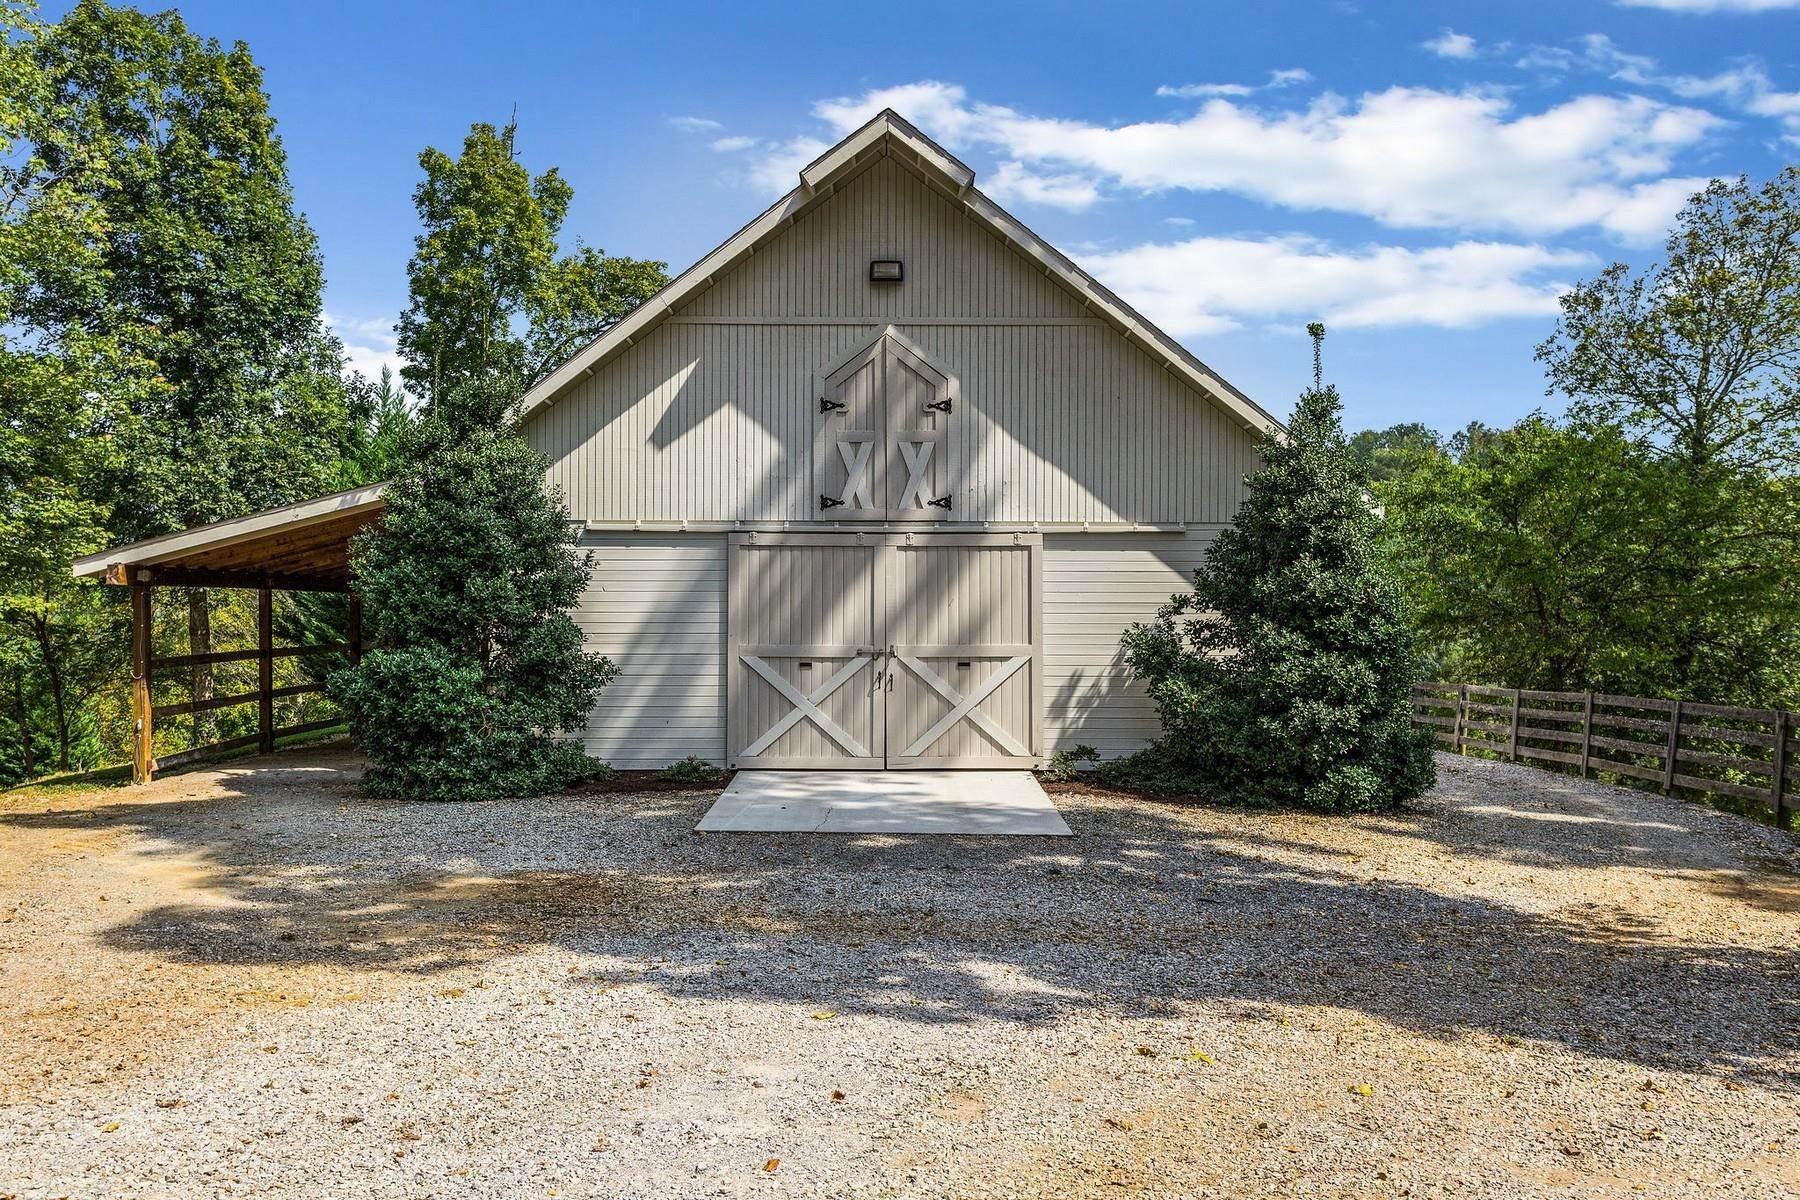 Acreage at 8519 Neubert Springs Rd. Knoxville, Tennessee 37920 United States